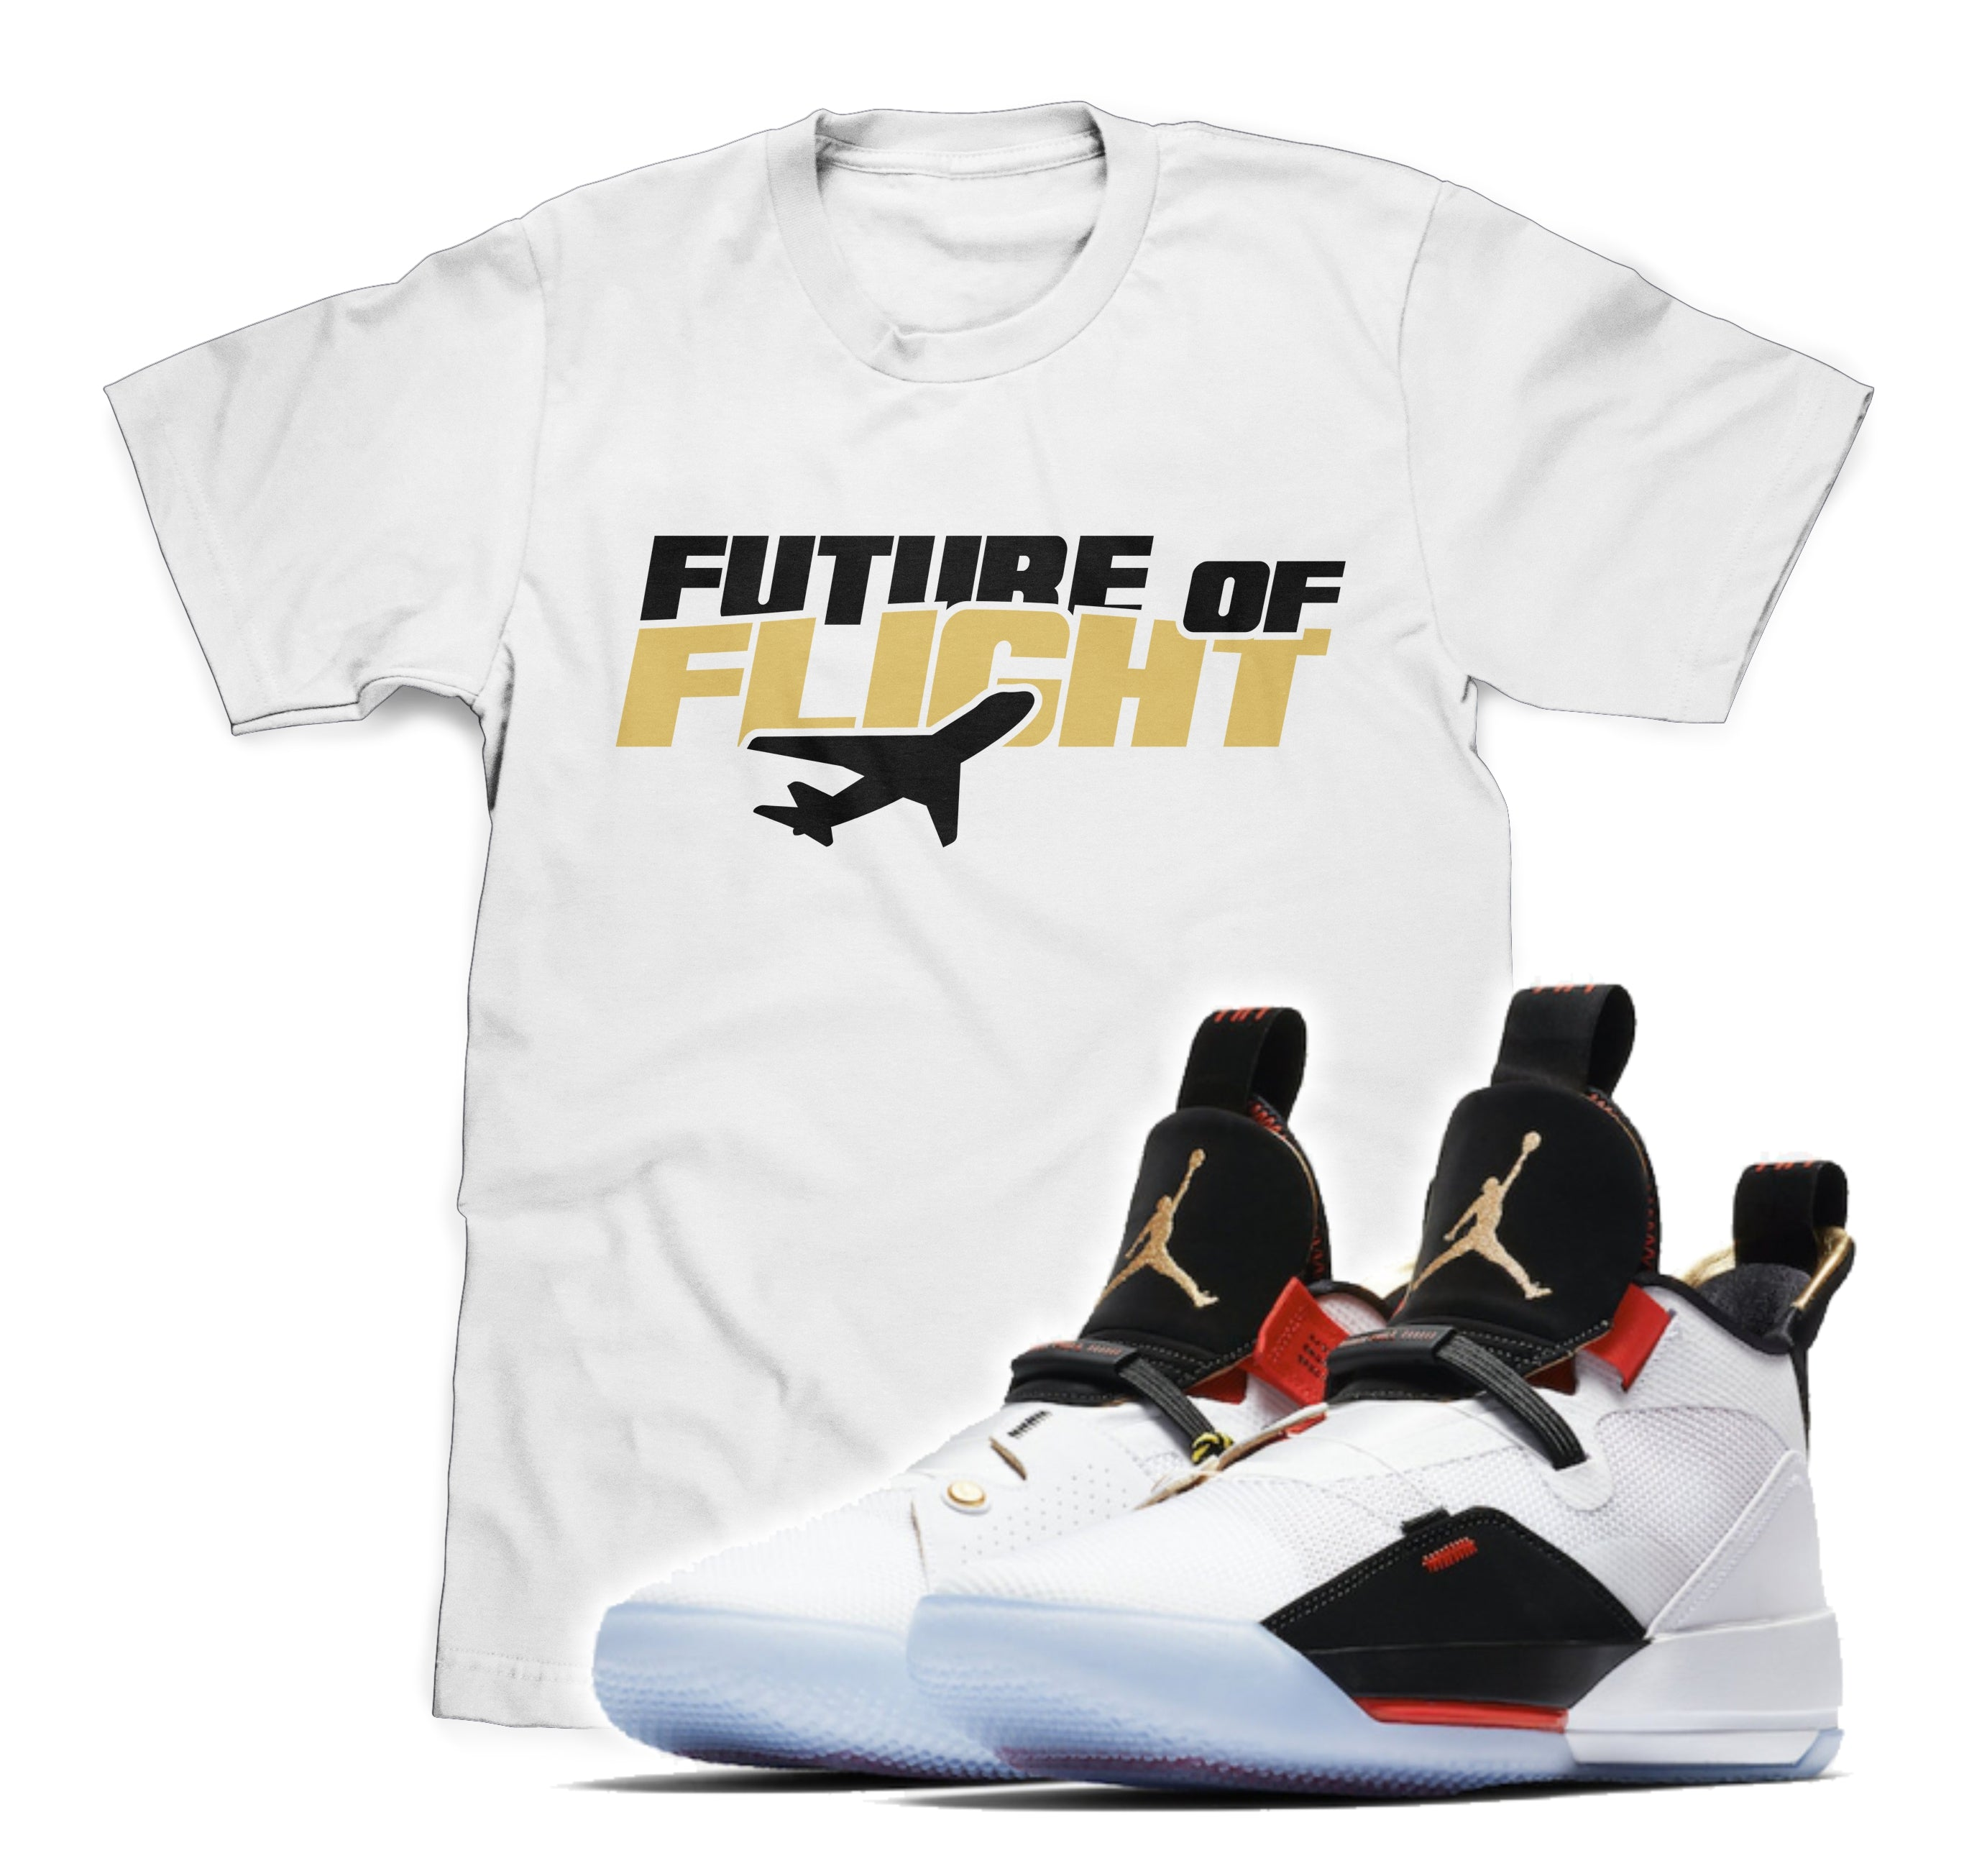 Future of Flight Tee (Designed to match Air Jordan 33 Sneakers)